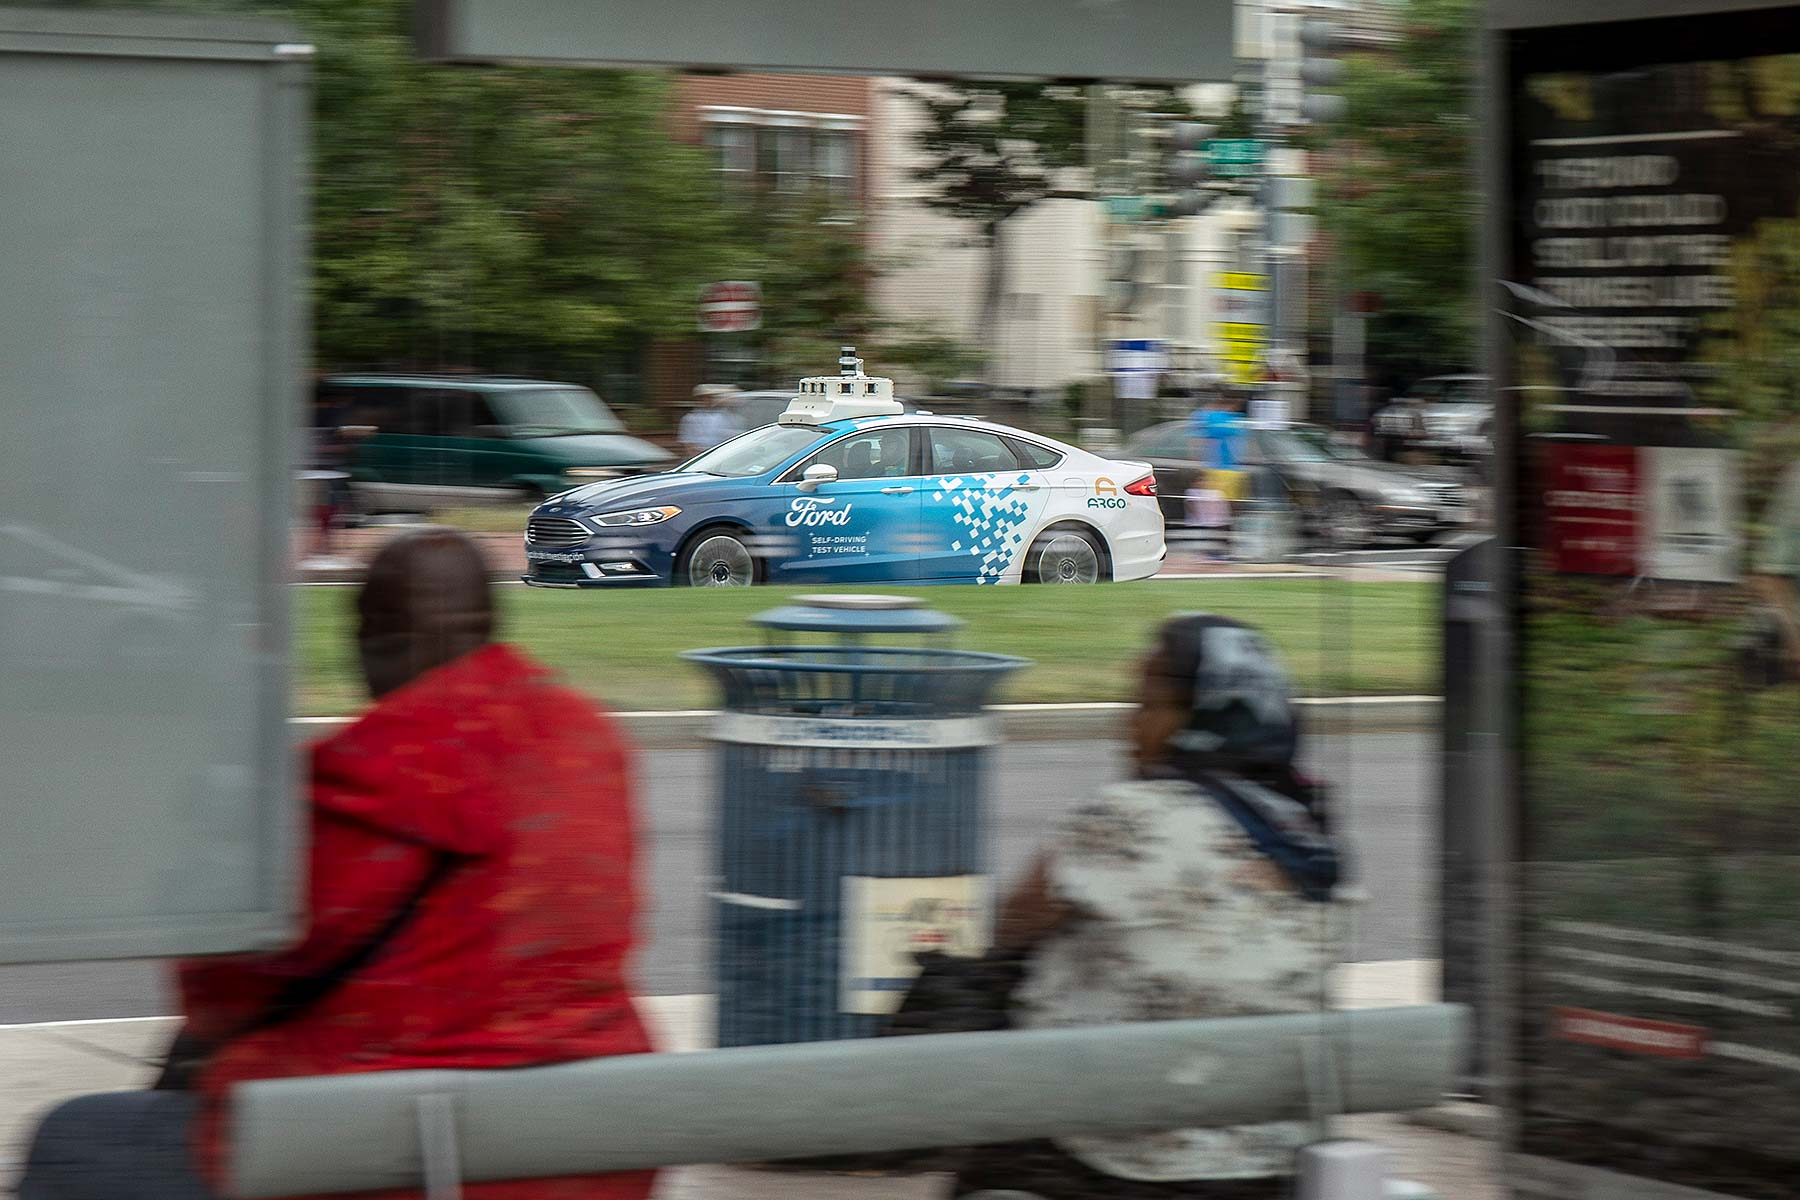 Ford autonomous vehicle tests in Washington, D.C.